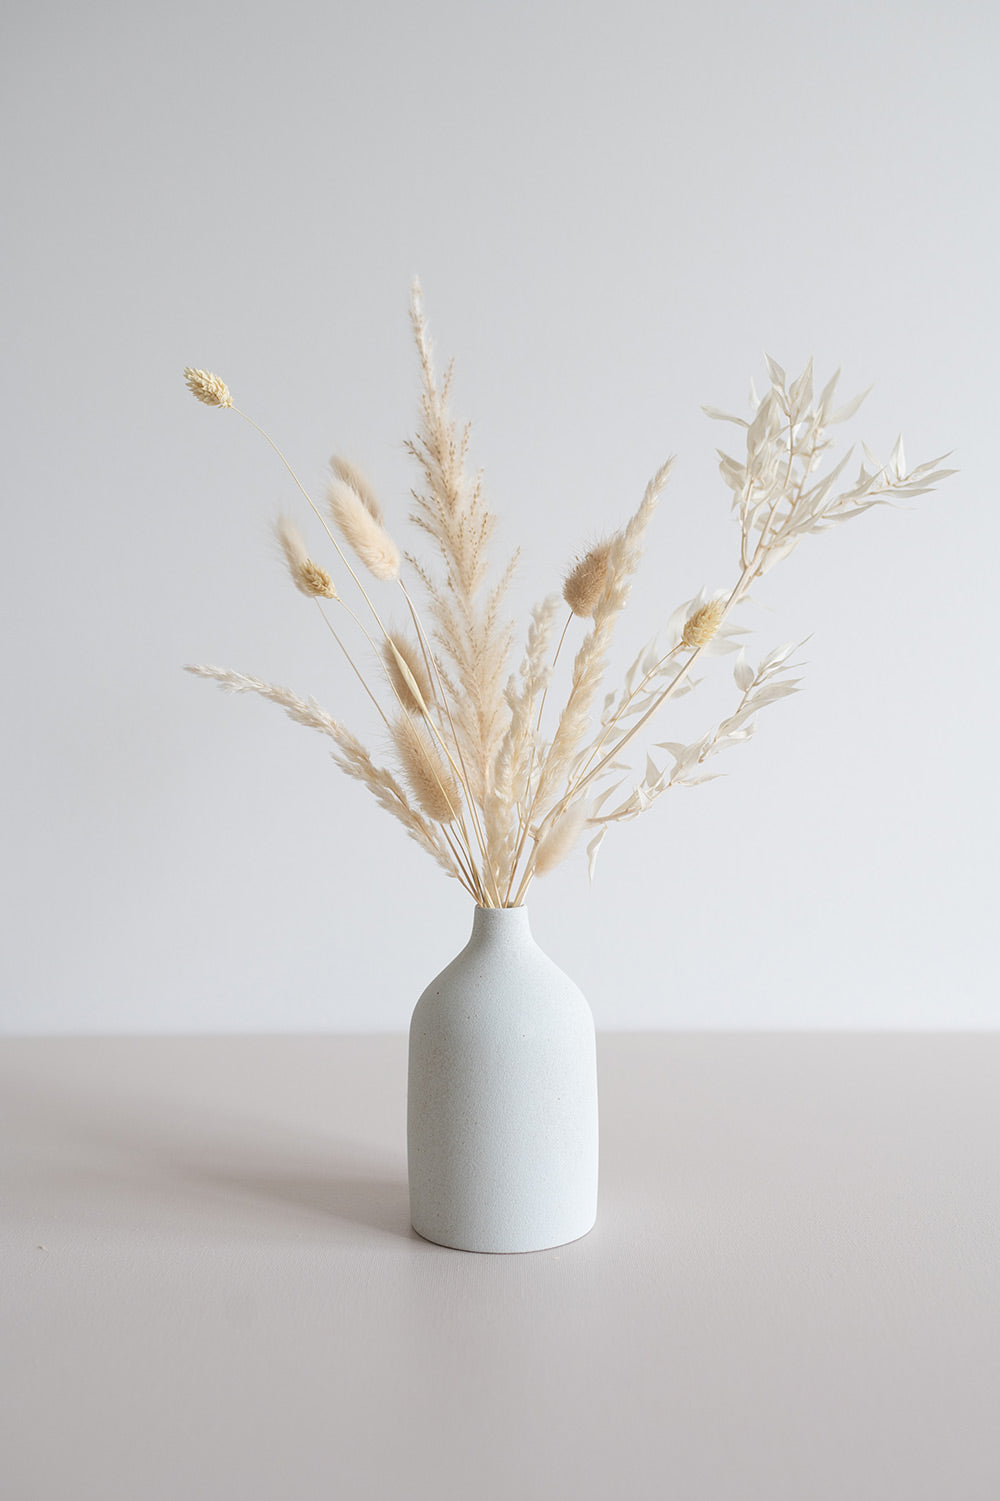 White bud vase arrangement of cream coloured dried florals and grasses.